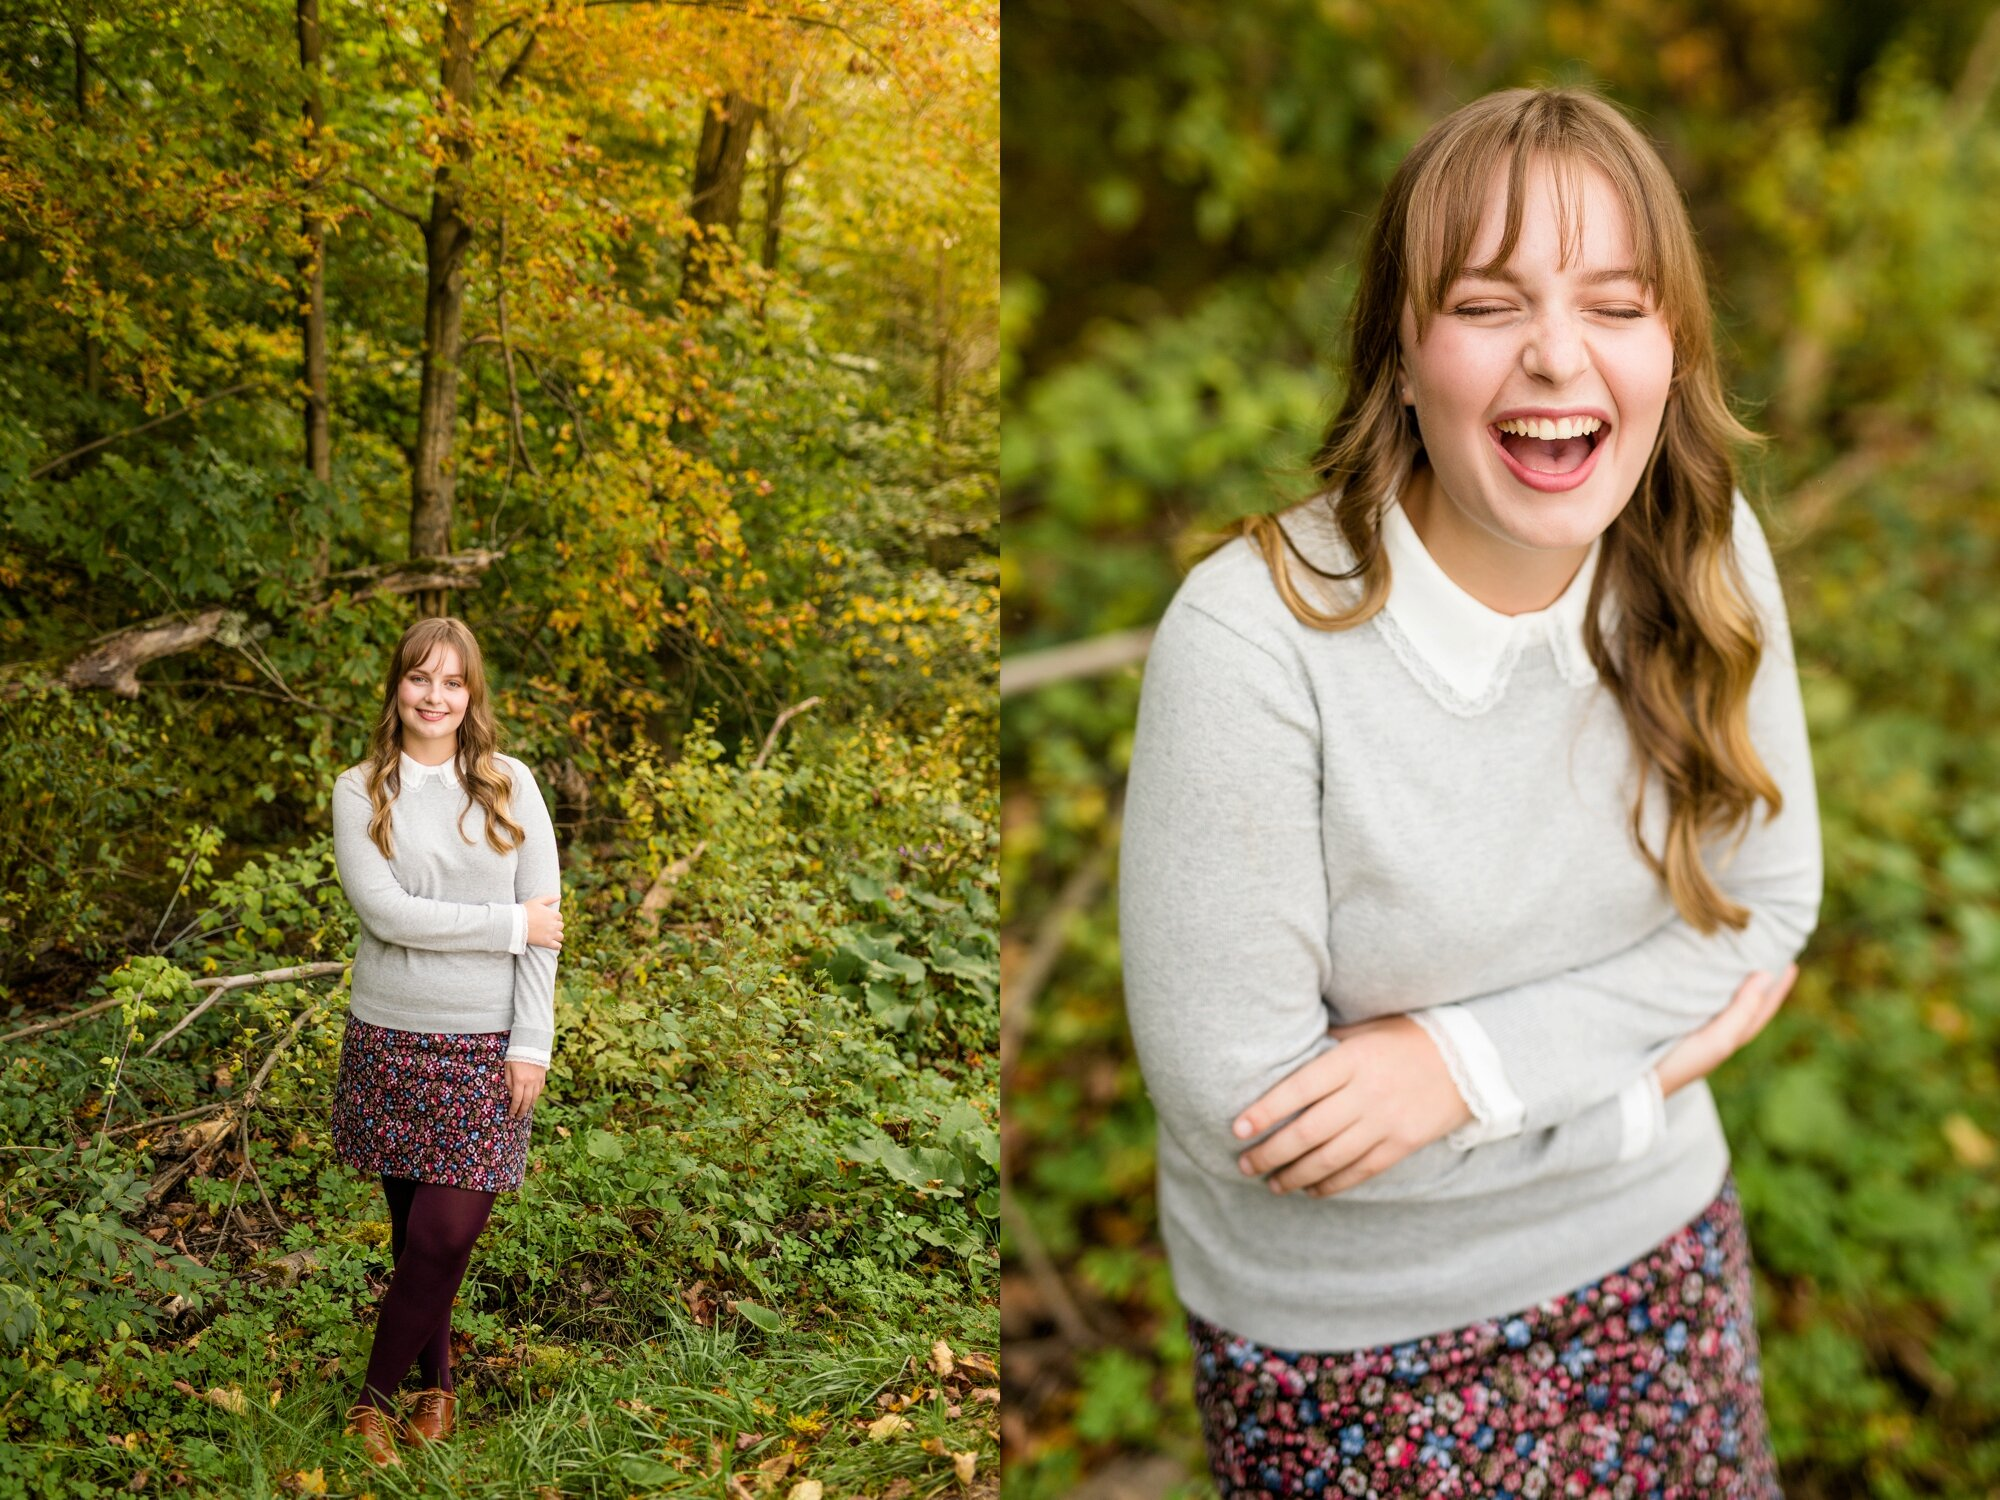 mcconnells mill senior photos, pittsburgh senior photographer, harry potter senior photos, cranberry township photographer, pittsburgh wedding photographer